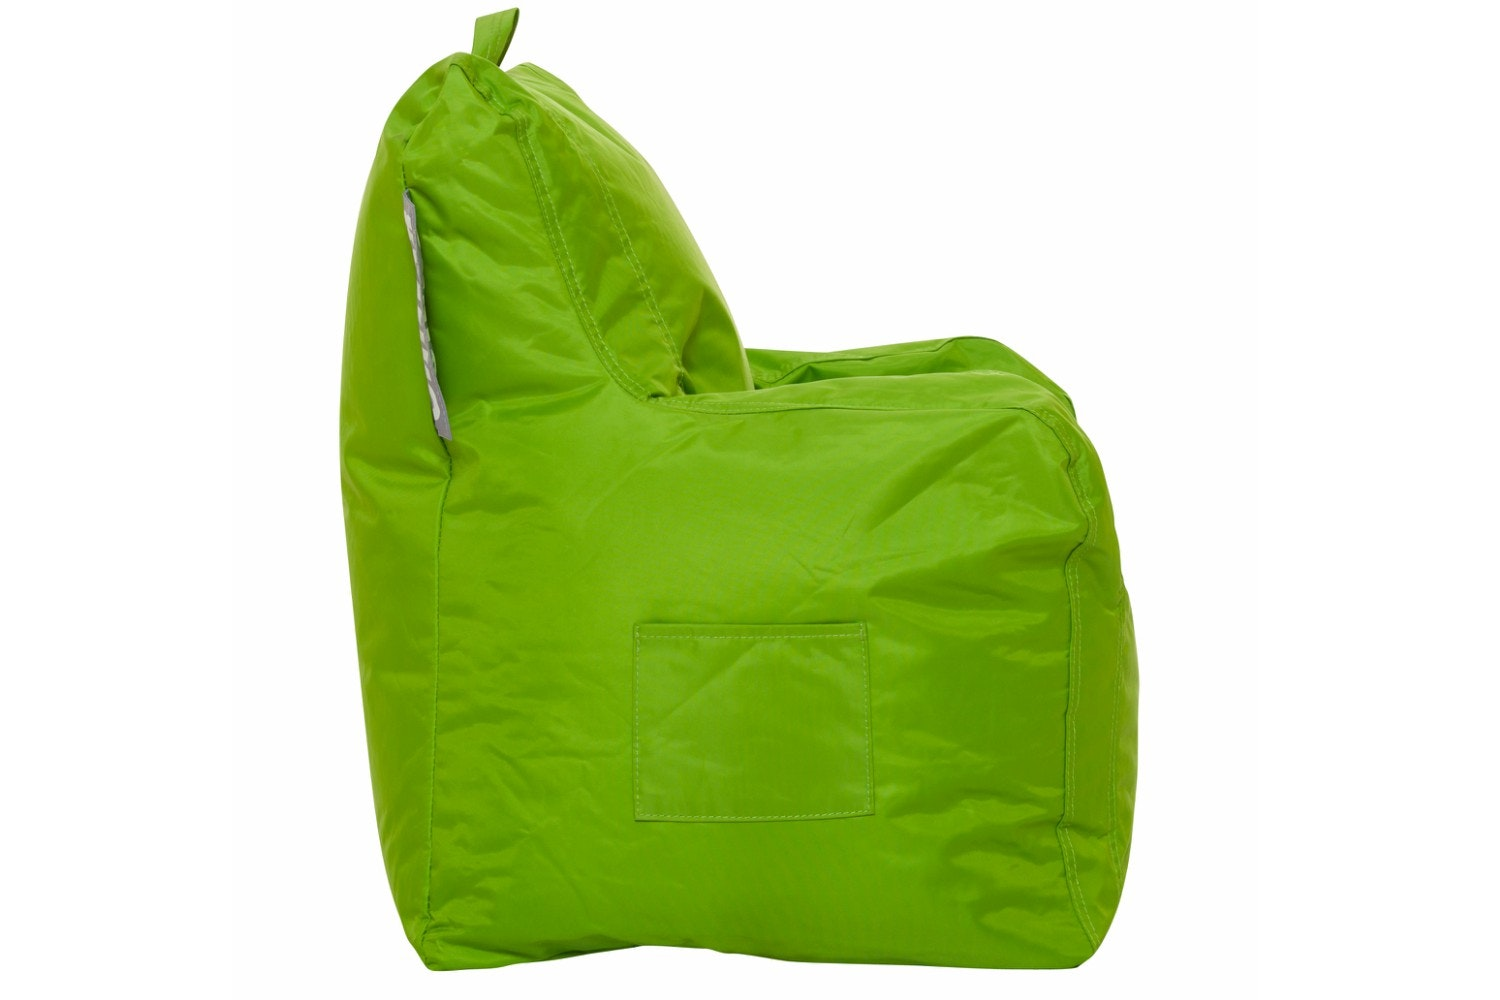 Chillax Kids Armchair Bean Bag | Lime